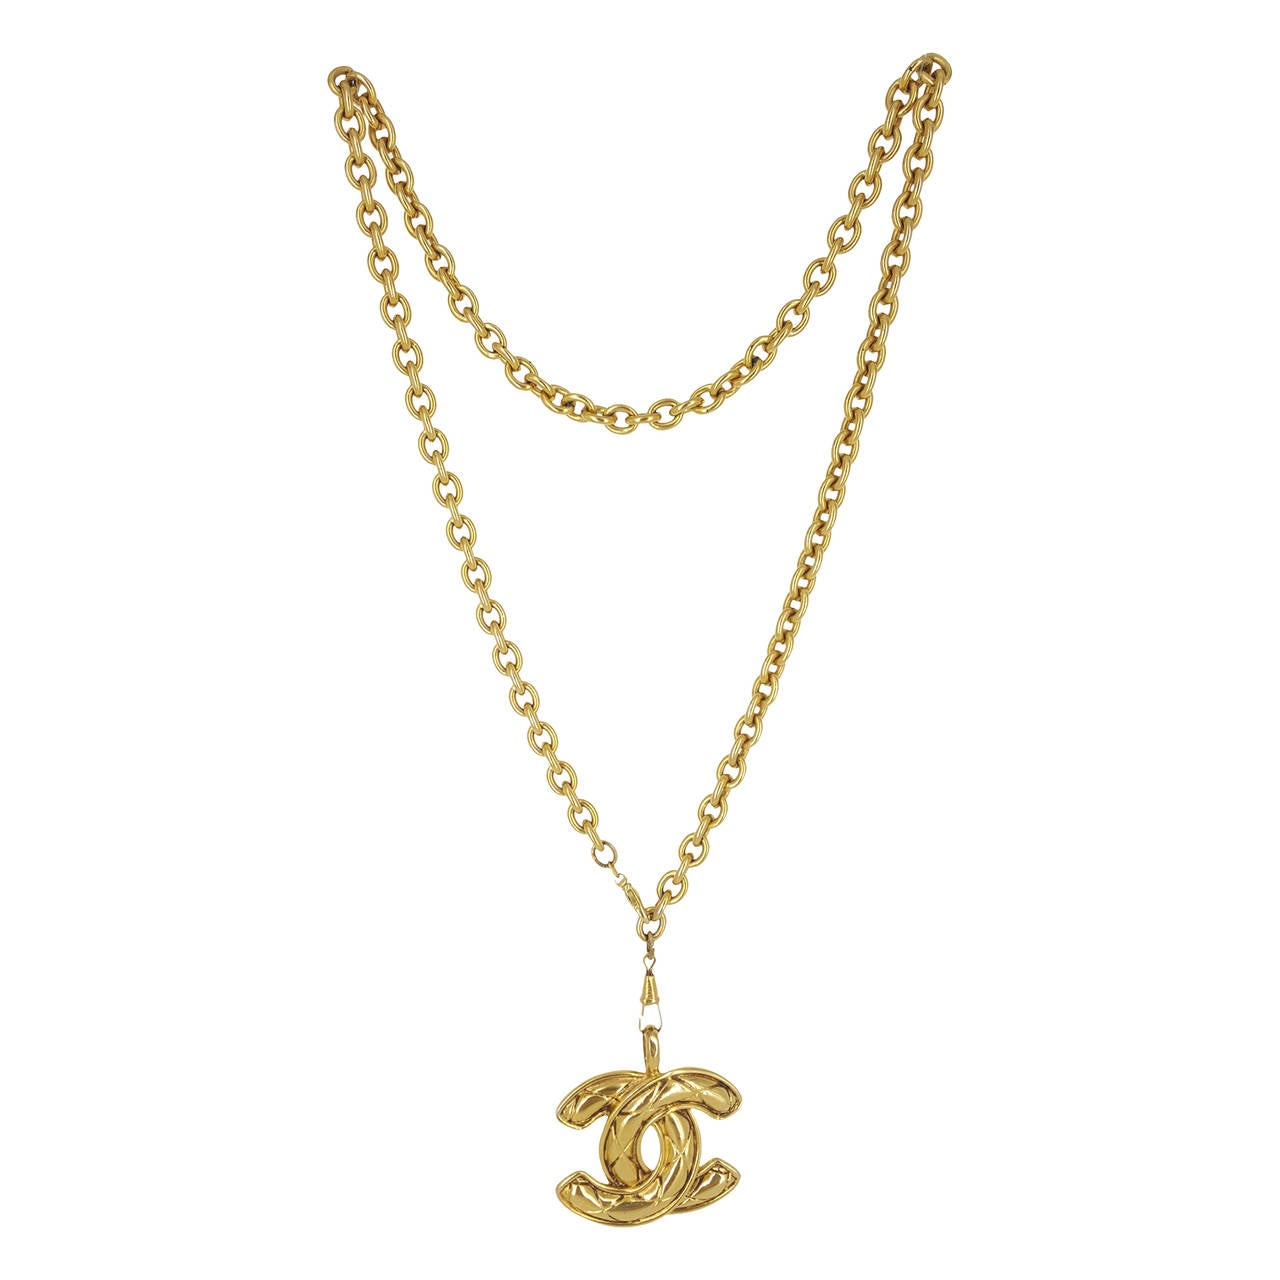 """Chanel Vintage Quilted """"cc"""" Necklace On Long Chain From. Chatham Sapphire. Nfpa 704 Diamond. 24 Karat Earrings. Brand Bands. Water Filter Diamond. Band With Diamonds. Elephant Stud Earrings. Garnet Engagement Rings"""